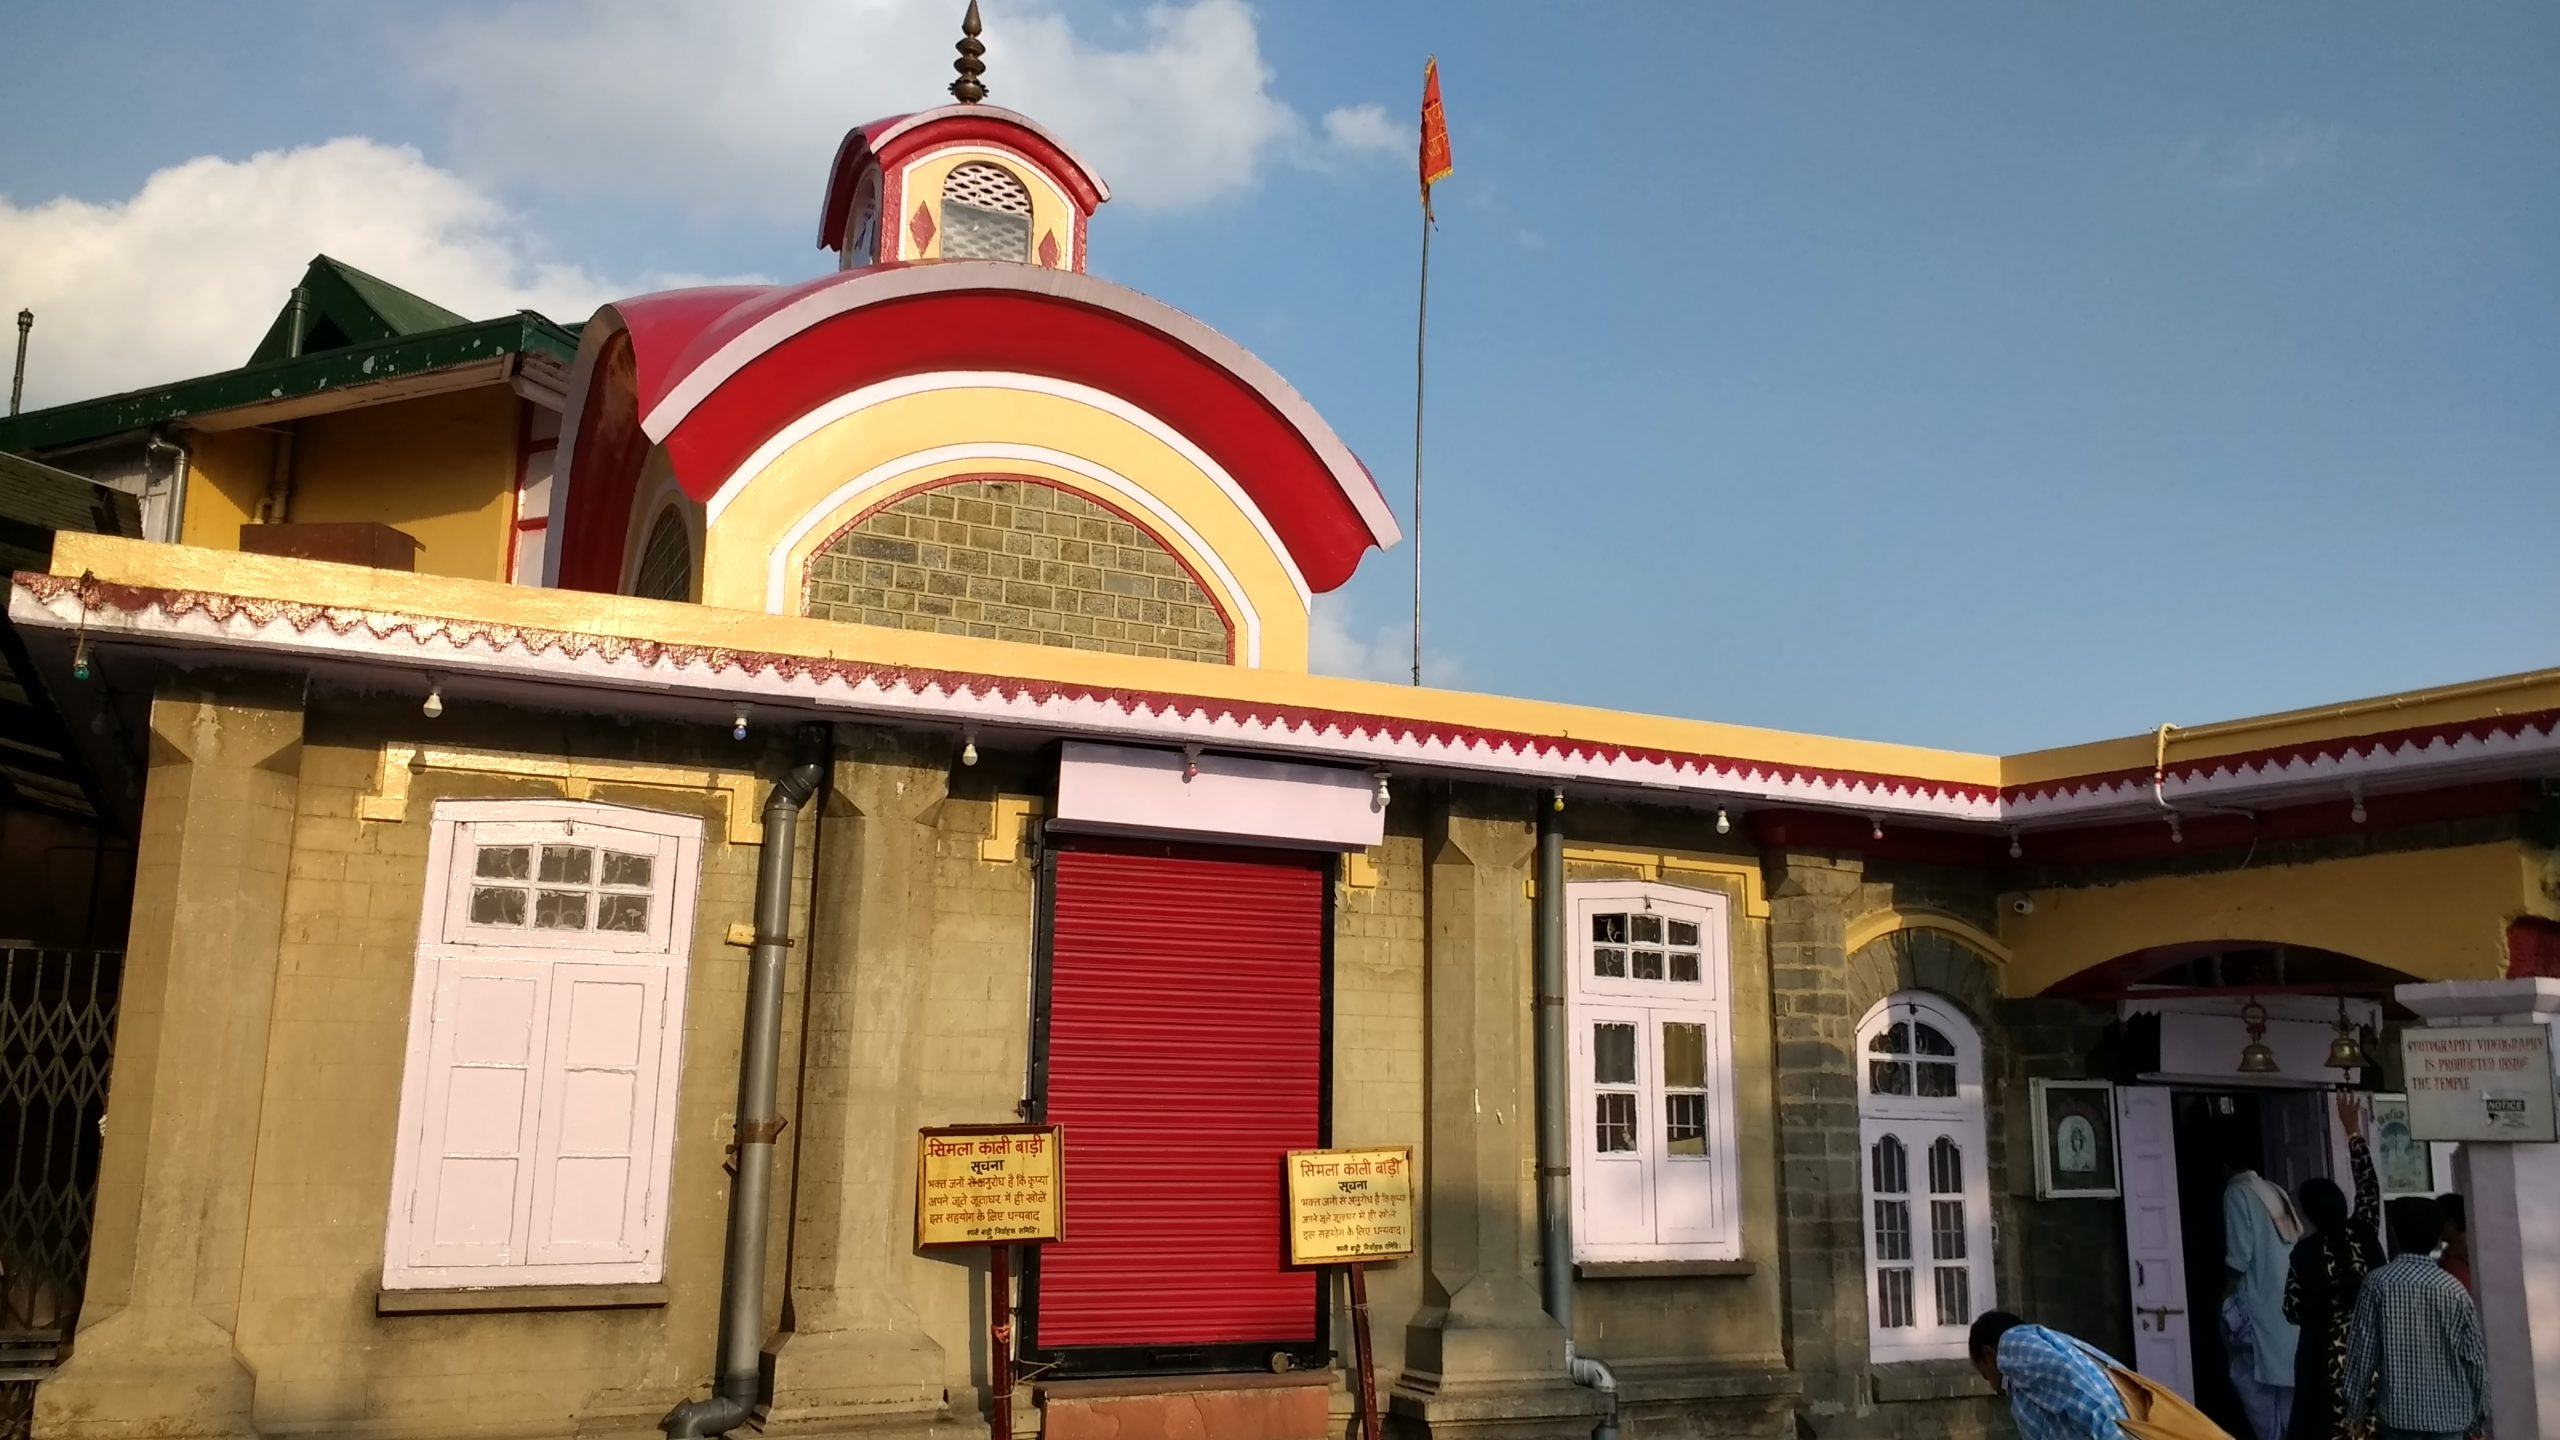 Kali Bari Temple-Amazing Place to Visit in Shimla and Kufri